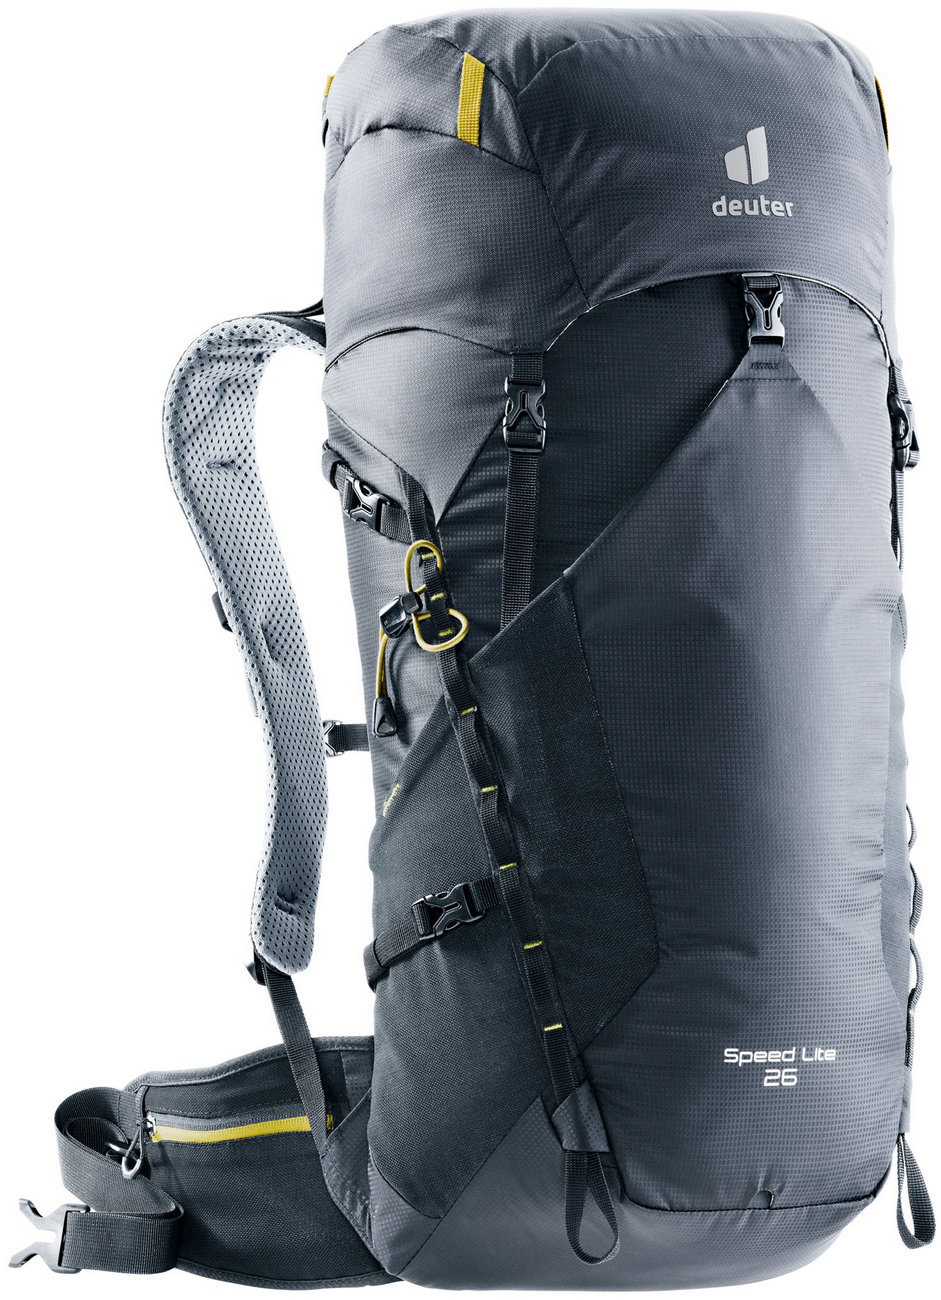 Новинки Рюкзак Deuter Speed Lite 26 (2021) 3410621-7000-SpeedLite26-18-d0.jpg